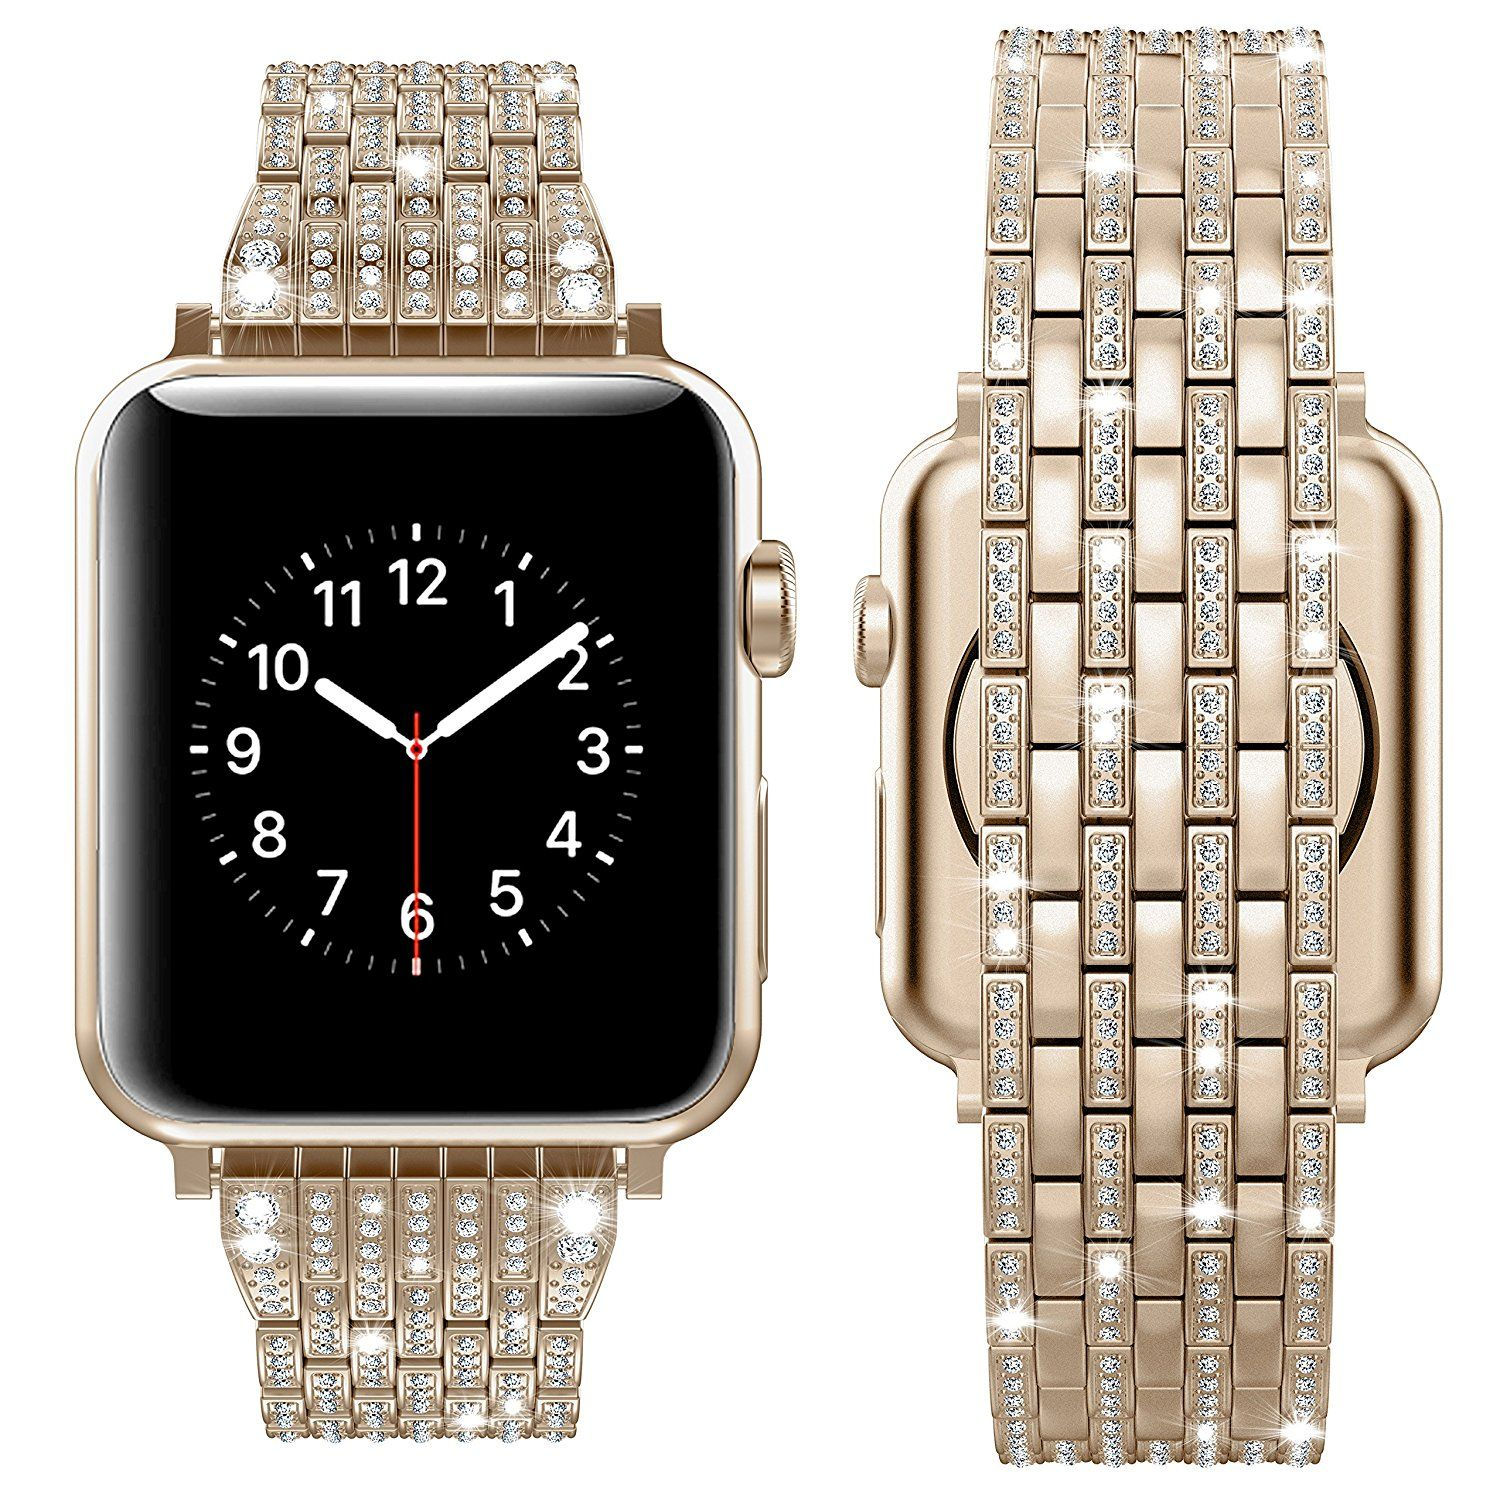 Apple Watch Series 5 4 3 2 Band Diamond Stainless Steel Strap